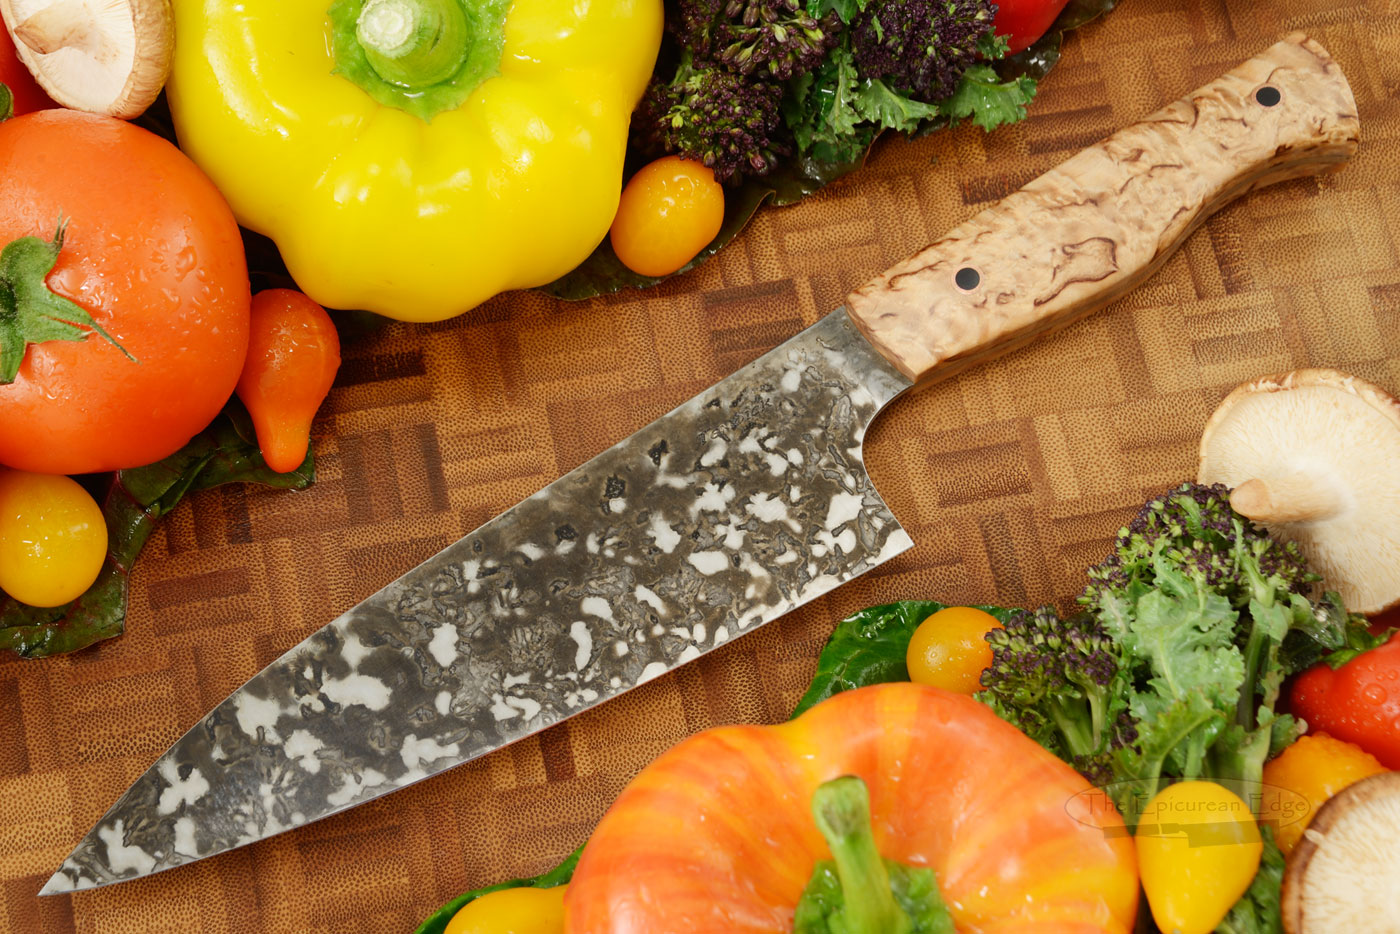 Chef's Knife (6.8